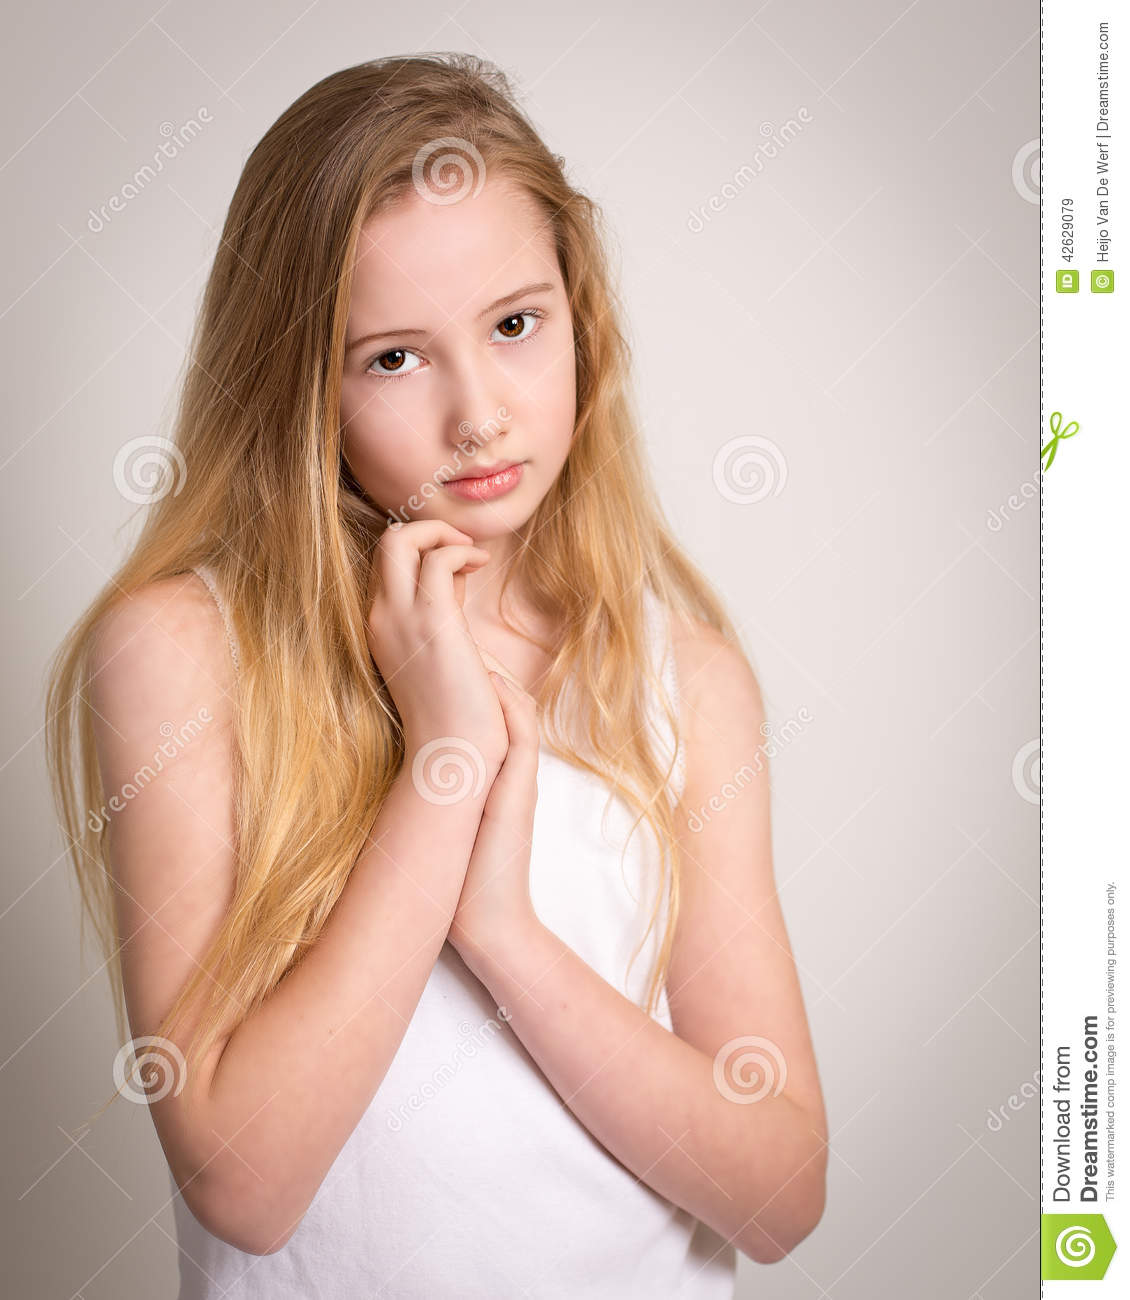 Zwembad Porno Sex Beautiful Young Shy Blond Girl Stock Photo Image 42629079